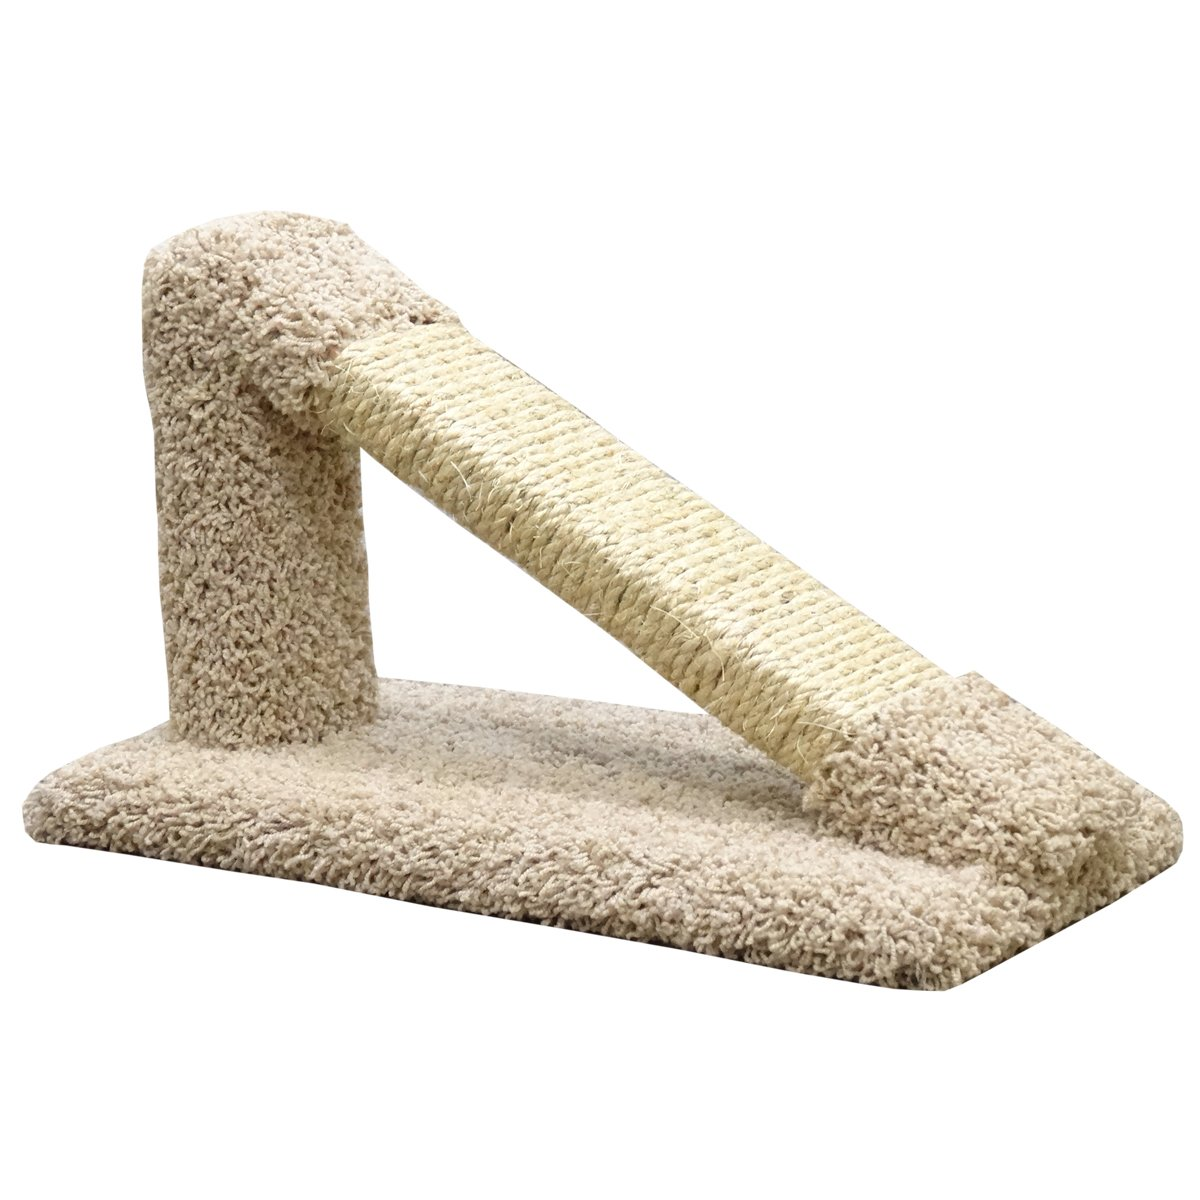 New Cat Condos Premier Tilted Scratching Post, Beige by New Cat Condos